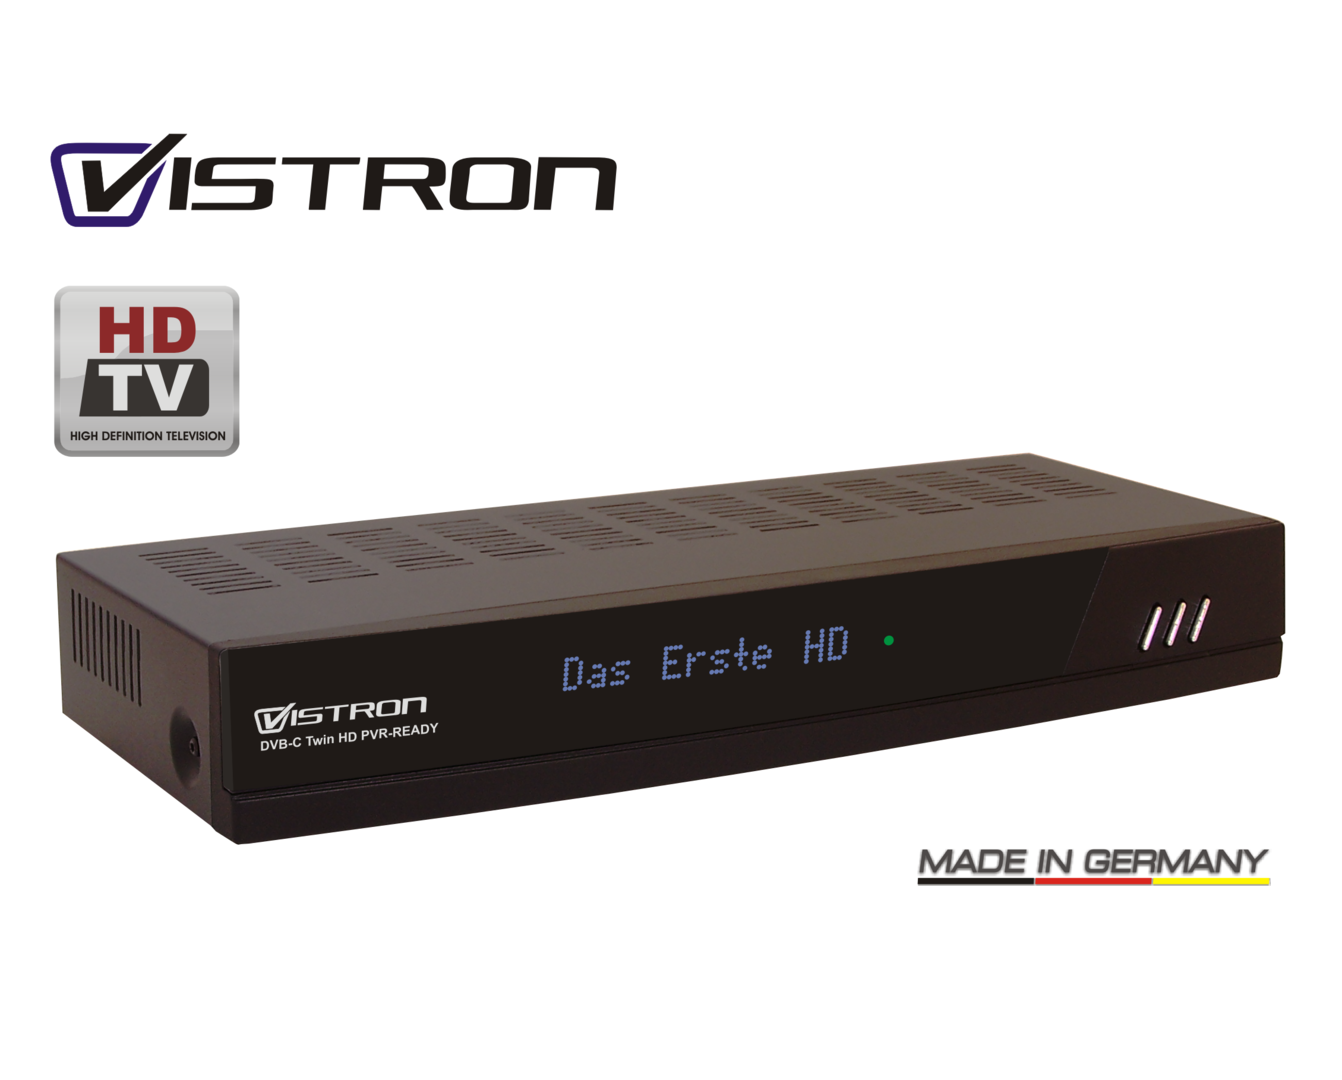 vistron vt 530 dvb c hd twin pvr ready hl elektronik 24. Black Bedroom Furniture Sets. Home Design Ideas